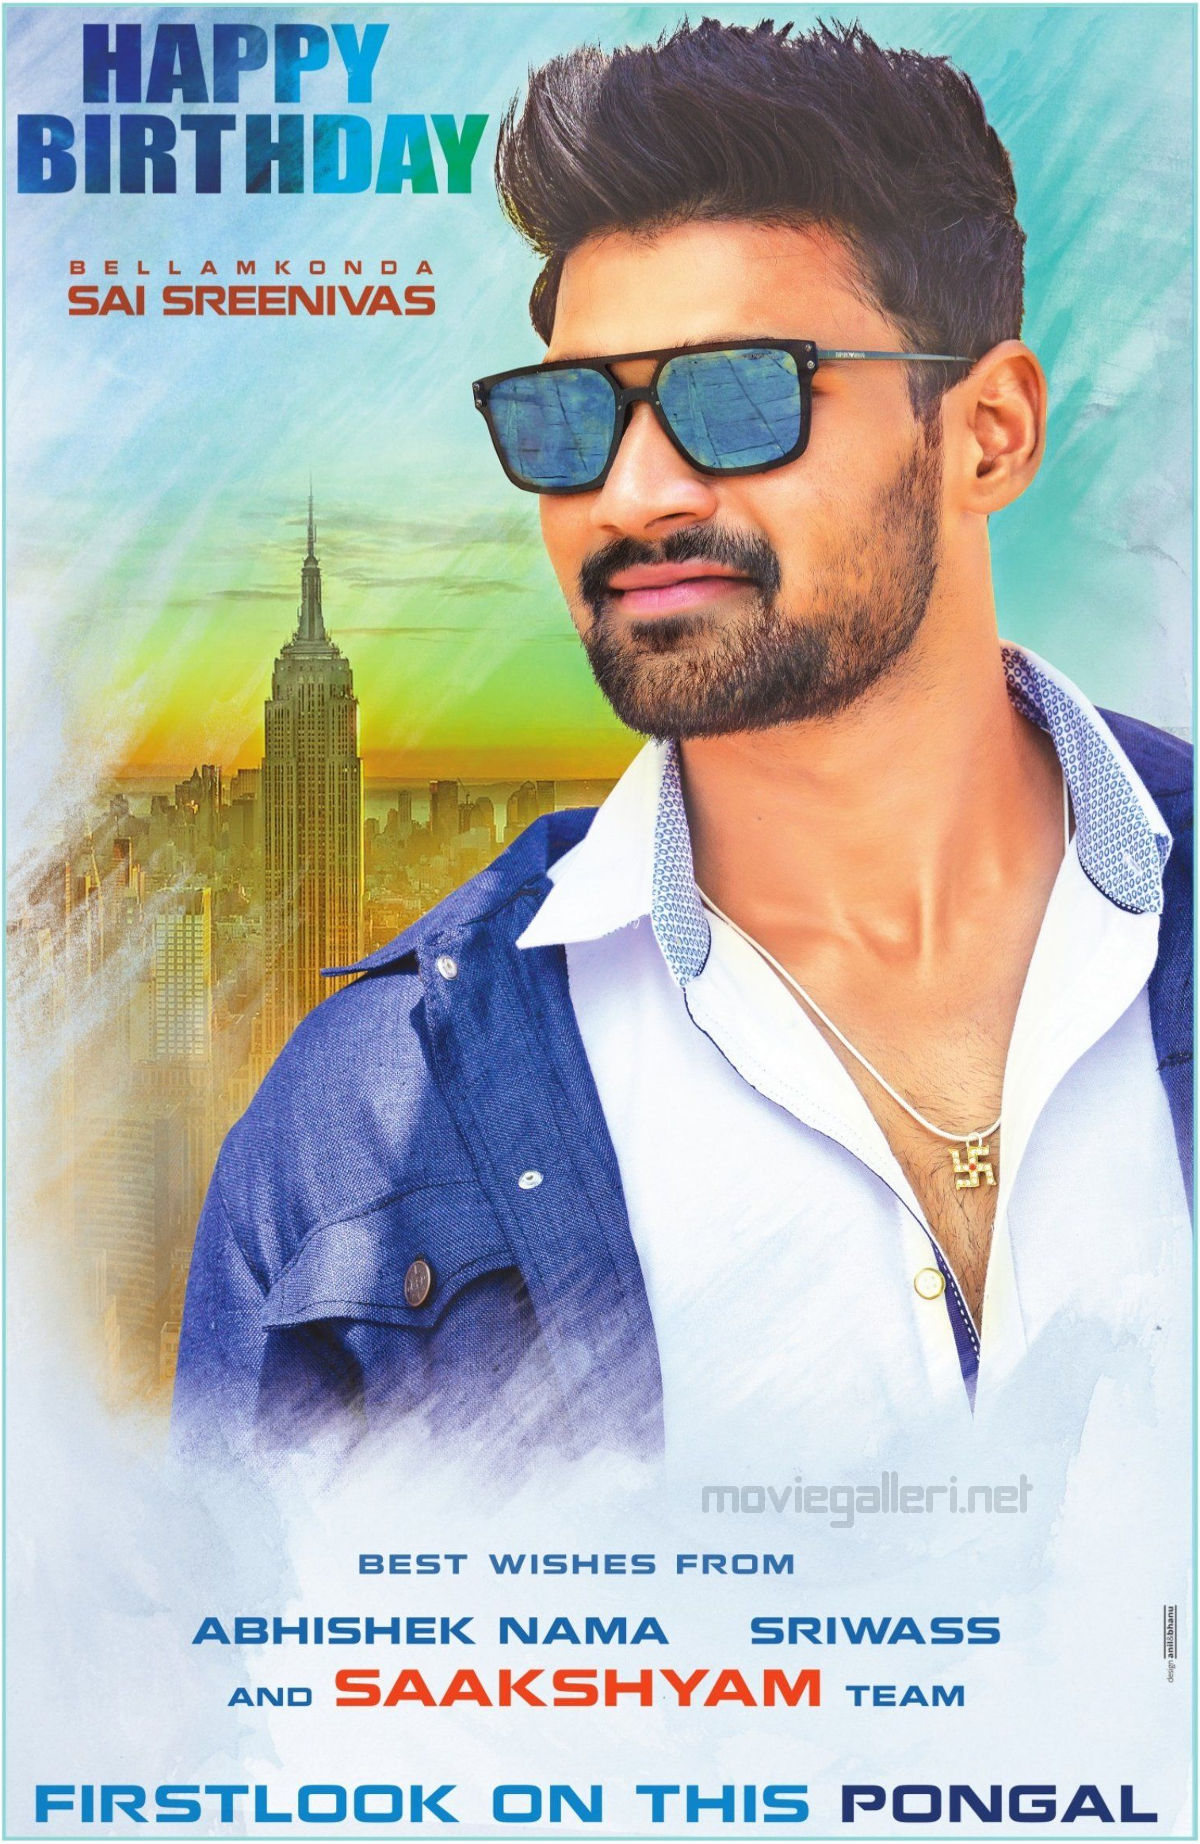 Saakshyam Movie Team Bellamkonda Sai Sreenivas Birthday Wishes Poster